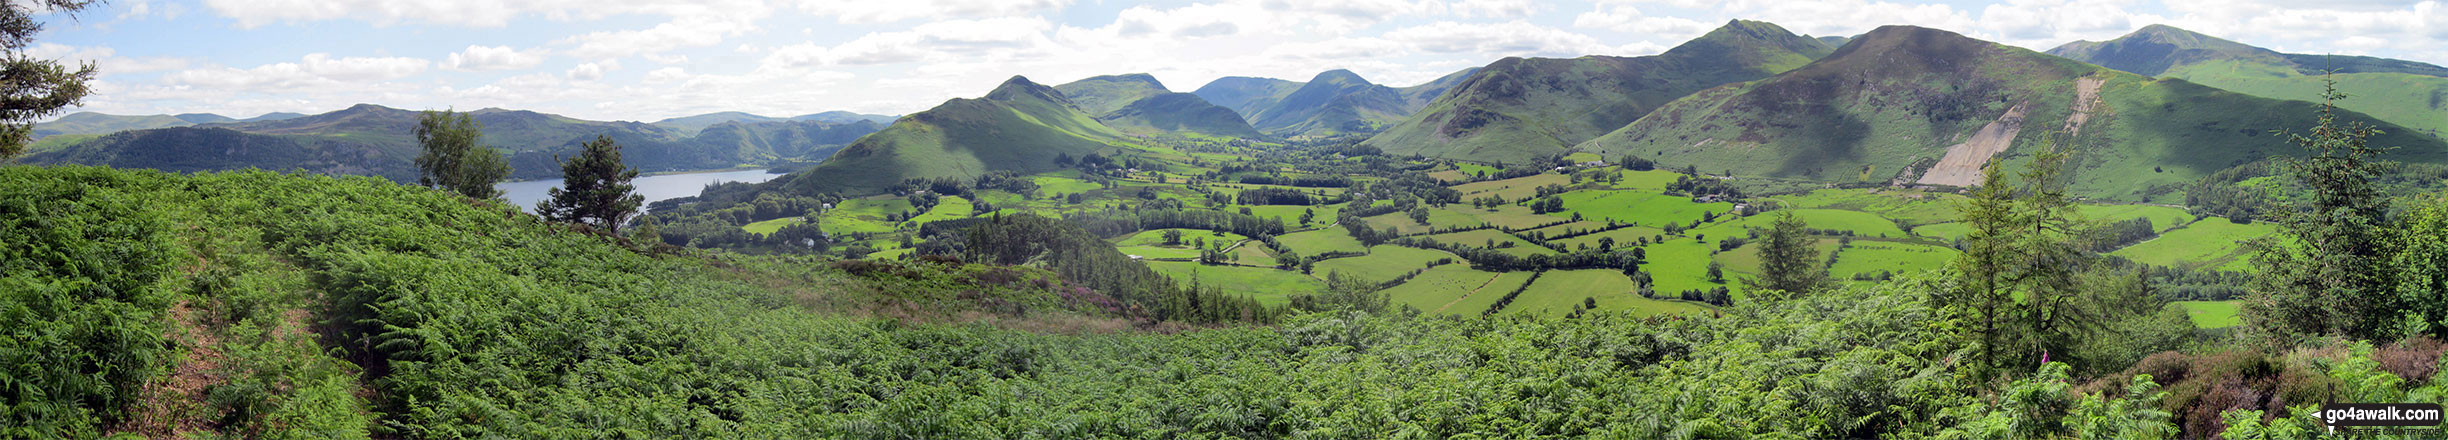 The view from the summit of Swinside (Portinscale) featuring Derwent Water, Cat Bells , Maiden Moor, High Spy, Dale Head (Newlands), Hindscarth, Robinson, Causey Pike, Sail, Crag Hill (Eel Crag), Barrow and Gridedale Pike